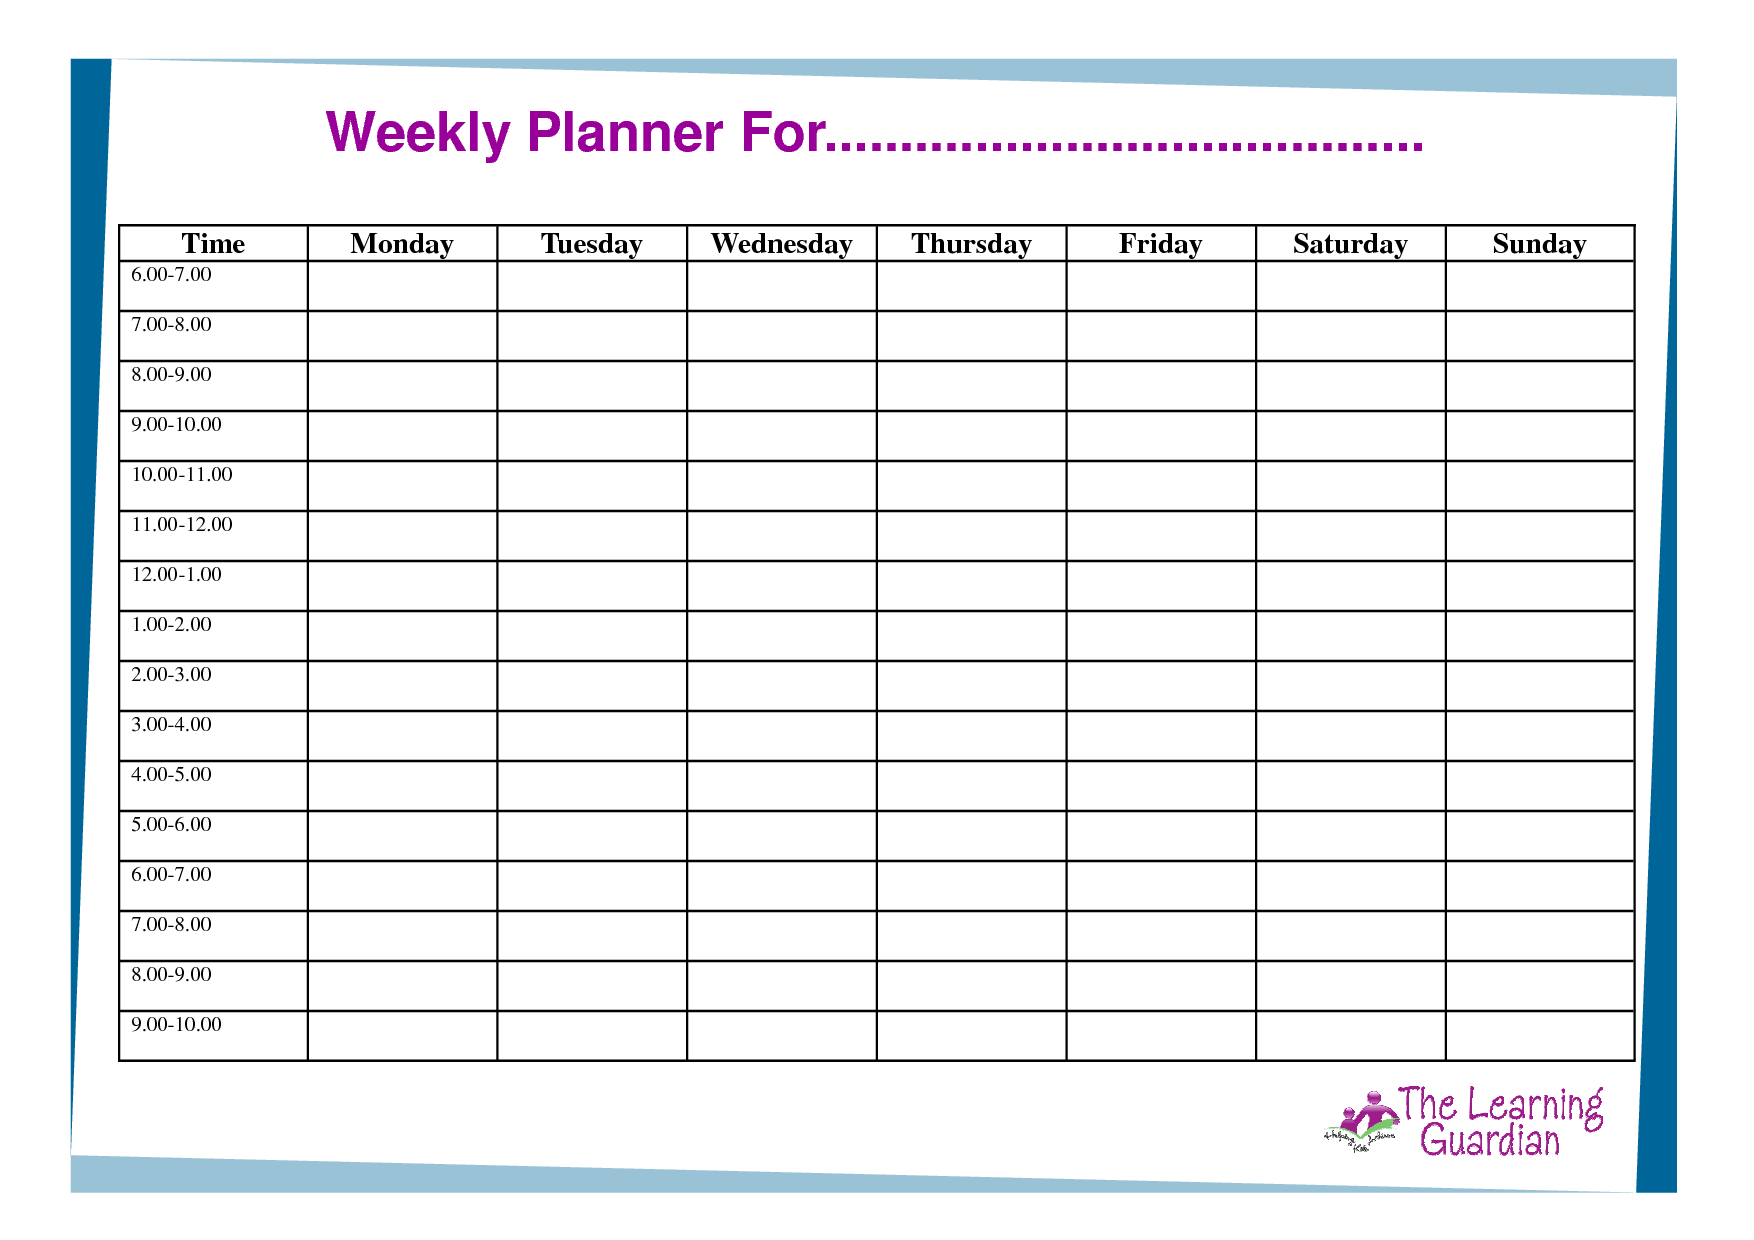 weeklyplannertemplate – Time Planner Template